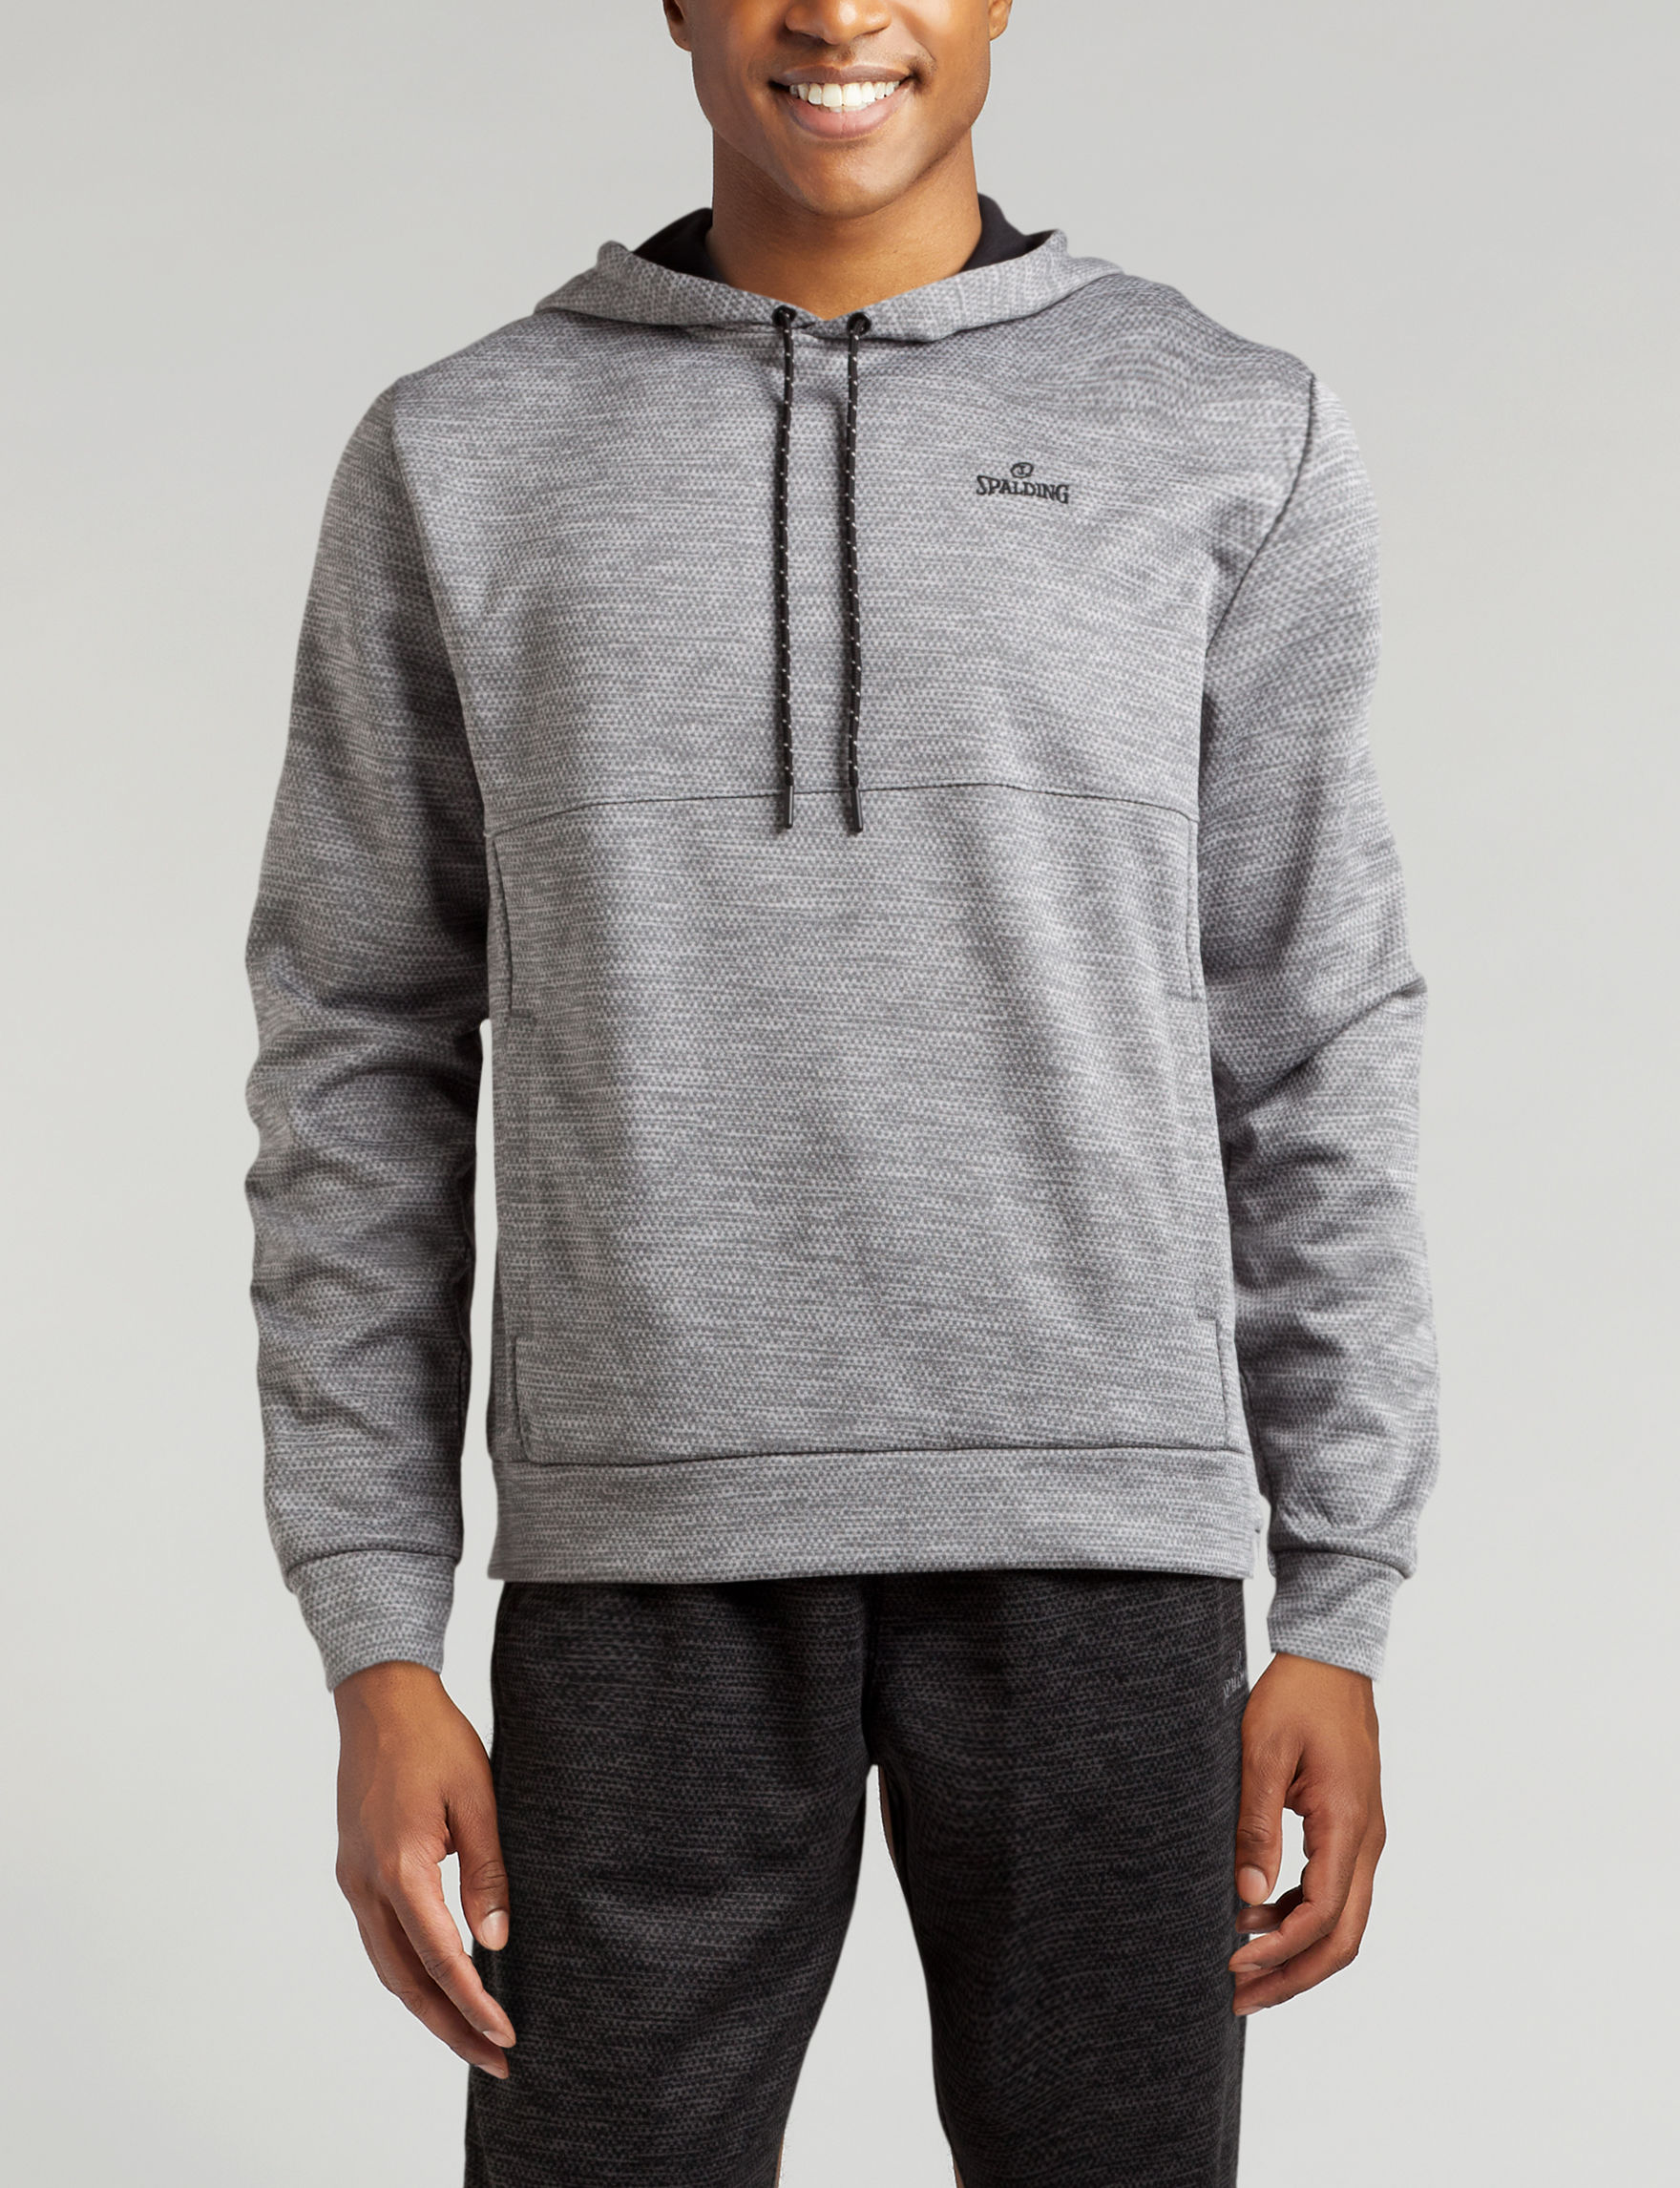 Spalding Grey Pull-overs